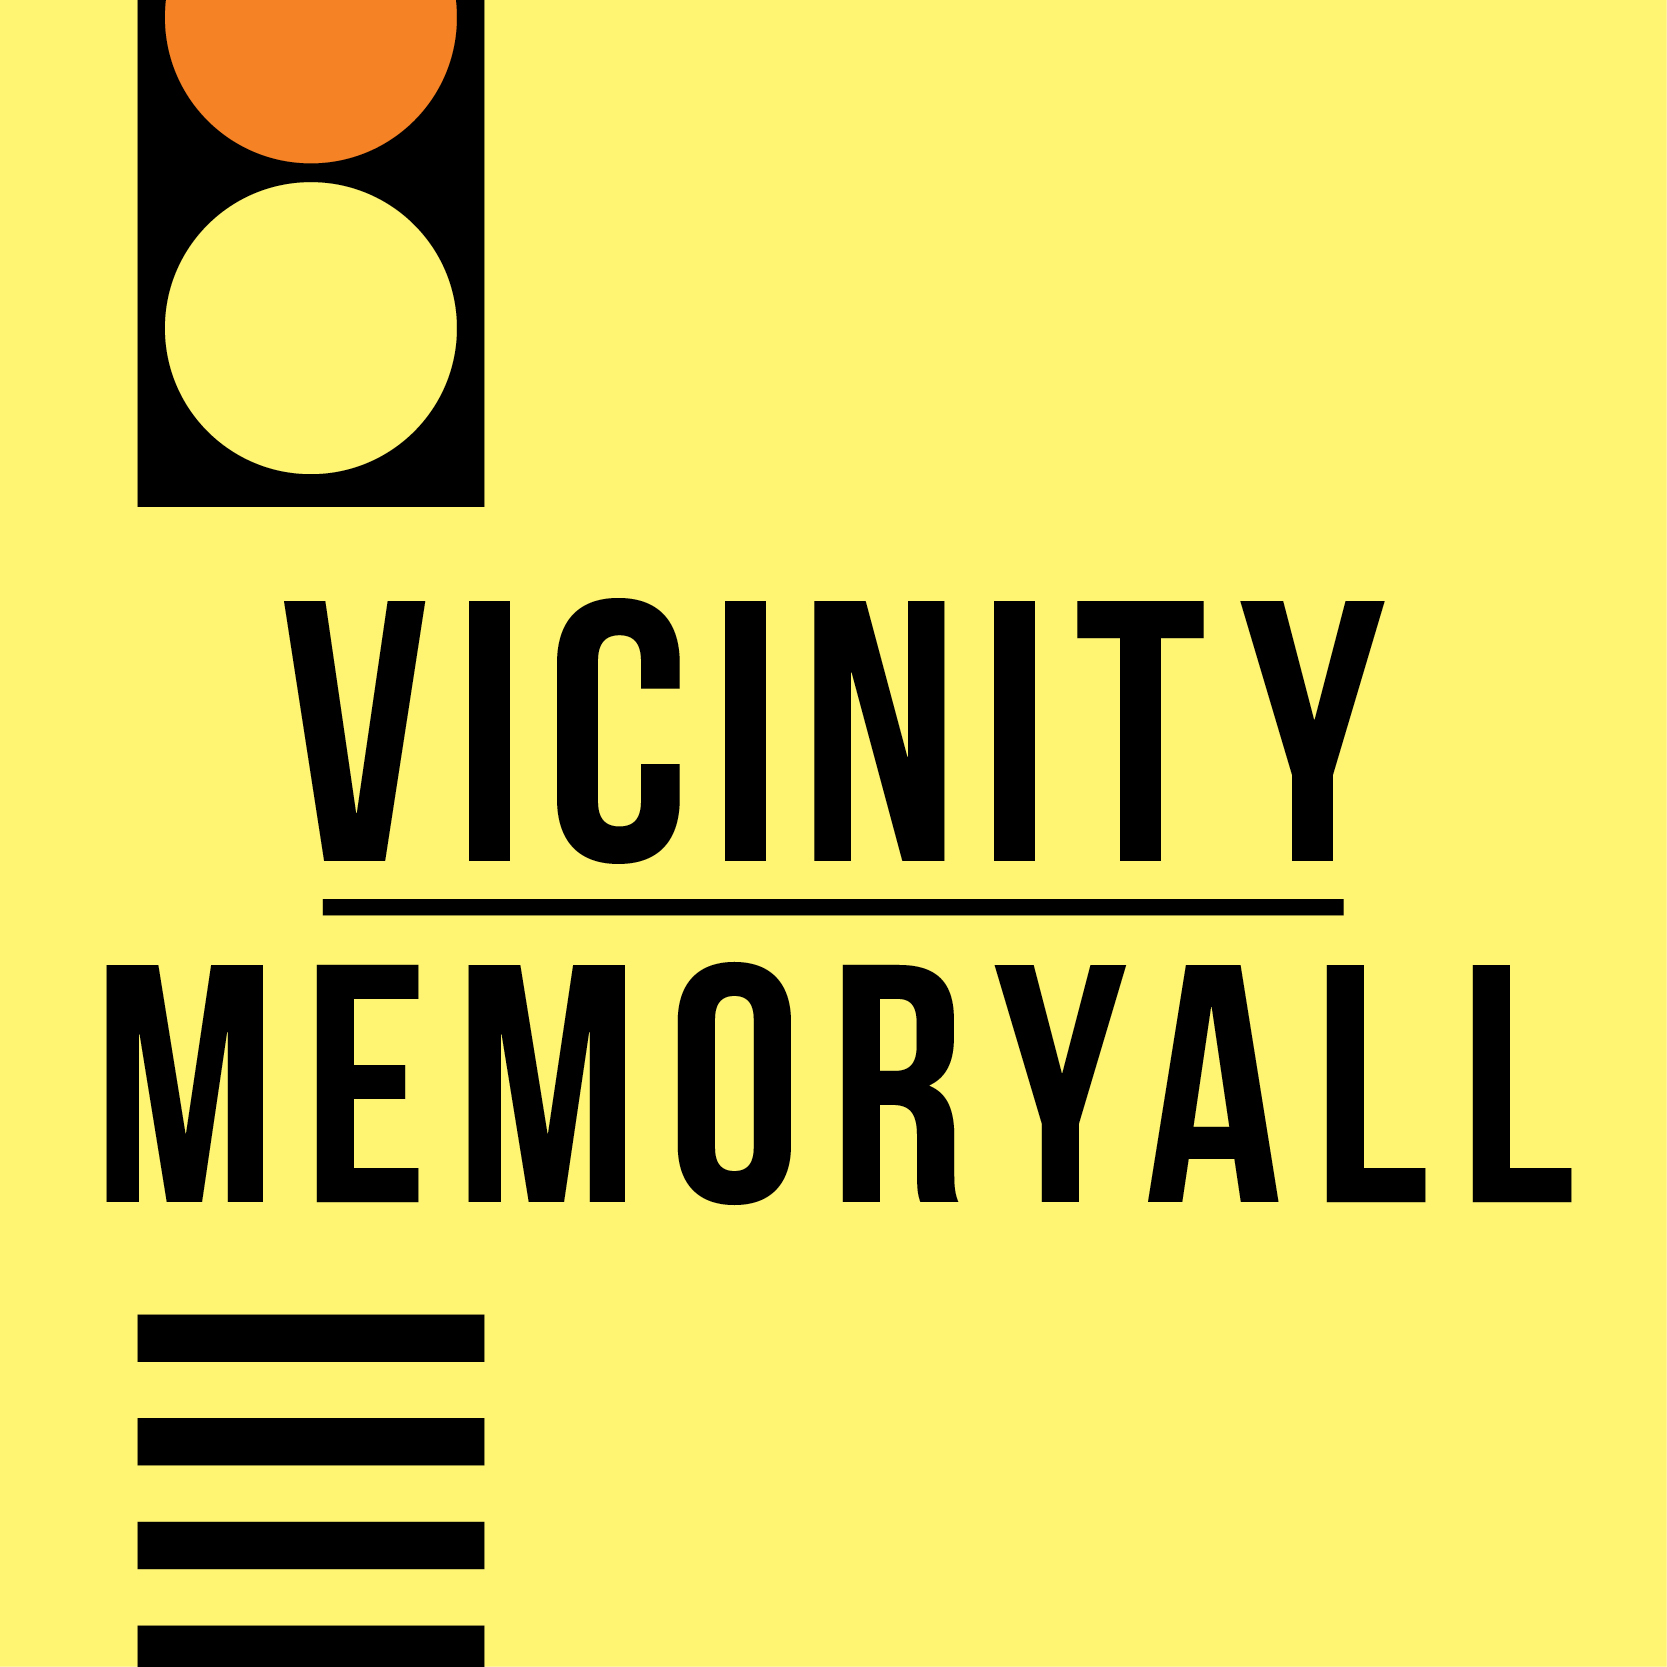 Vicinity Memorial Audio Christine Deavel Gary Deavel Sarah Linkatoon